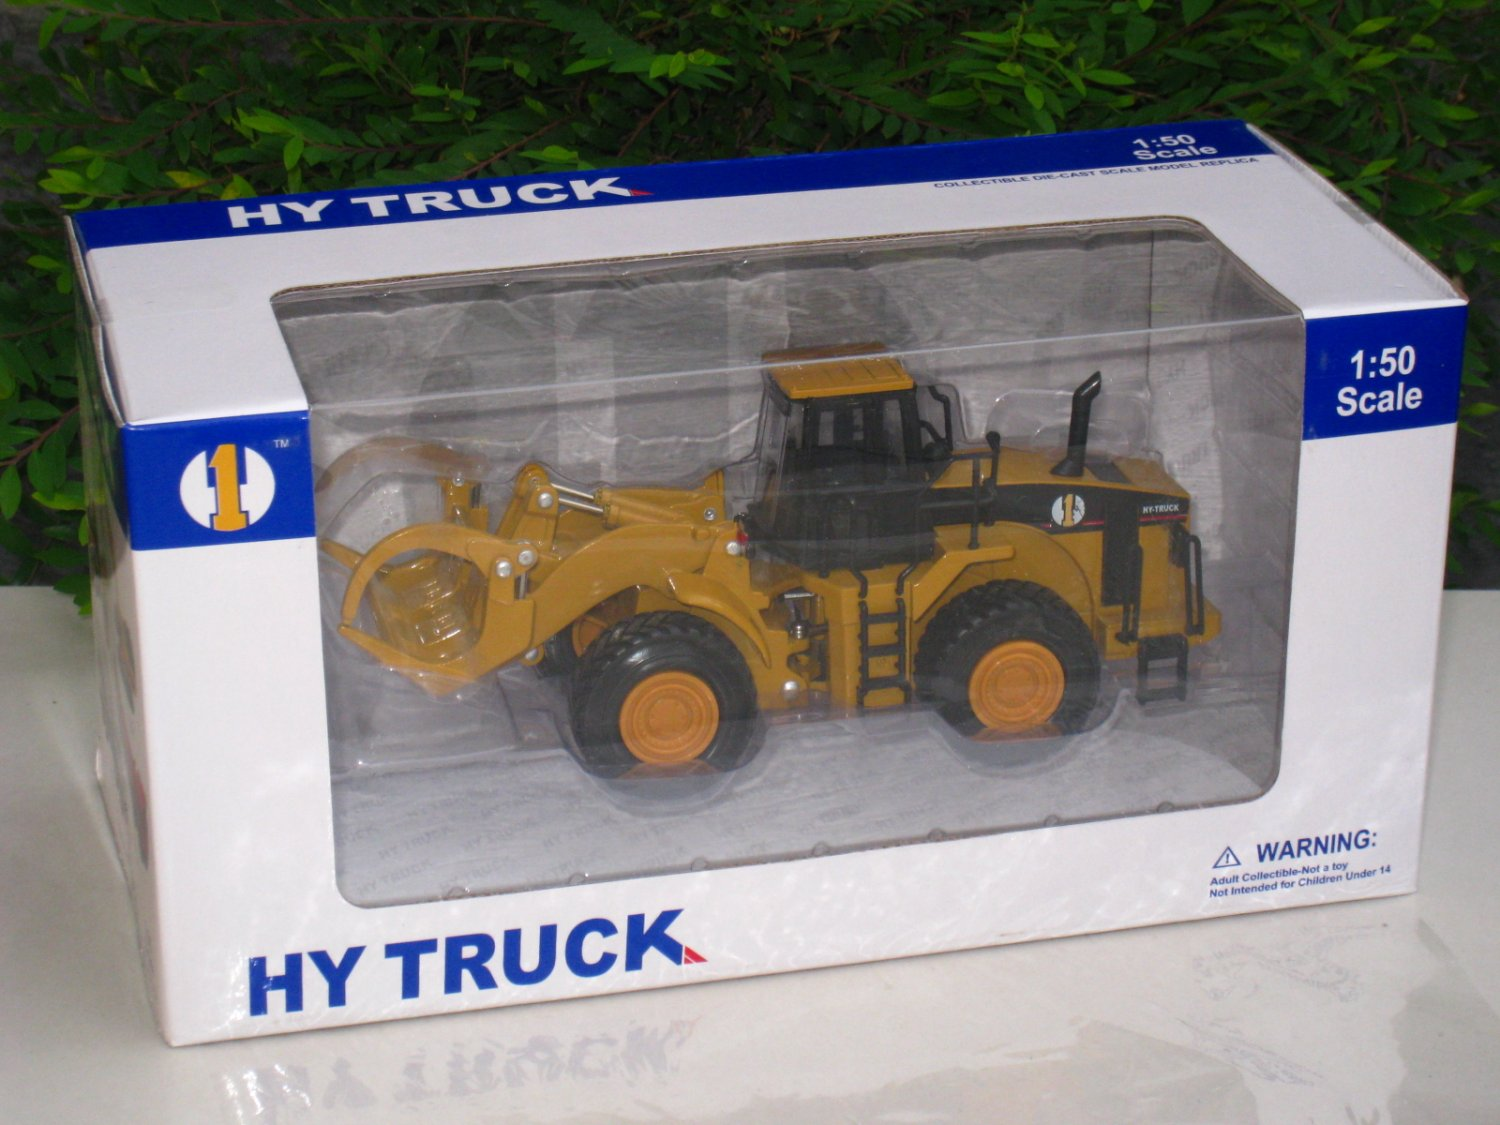 HY Truck 1/50 Log Loader Truck Construction Vehicle Diecast (19cm L)